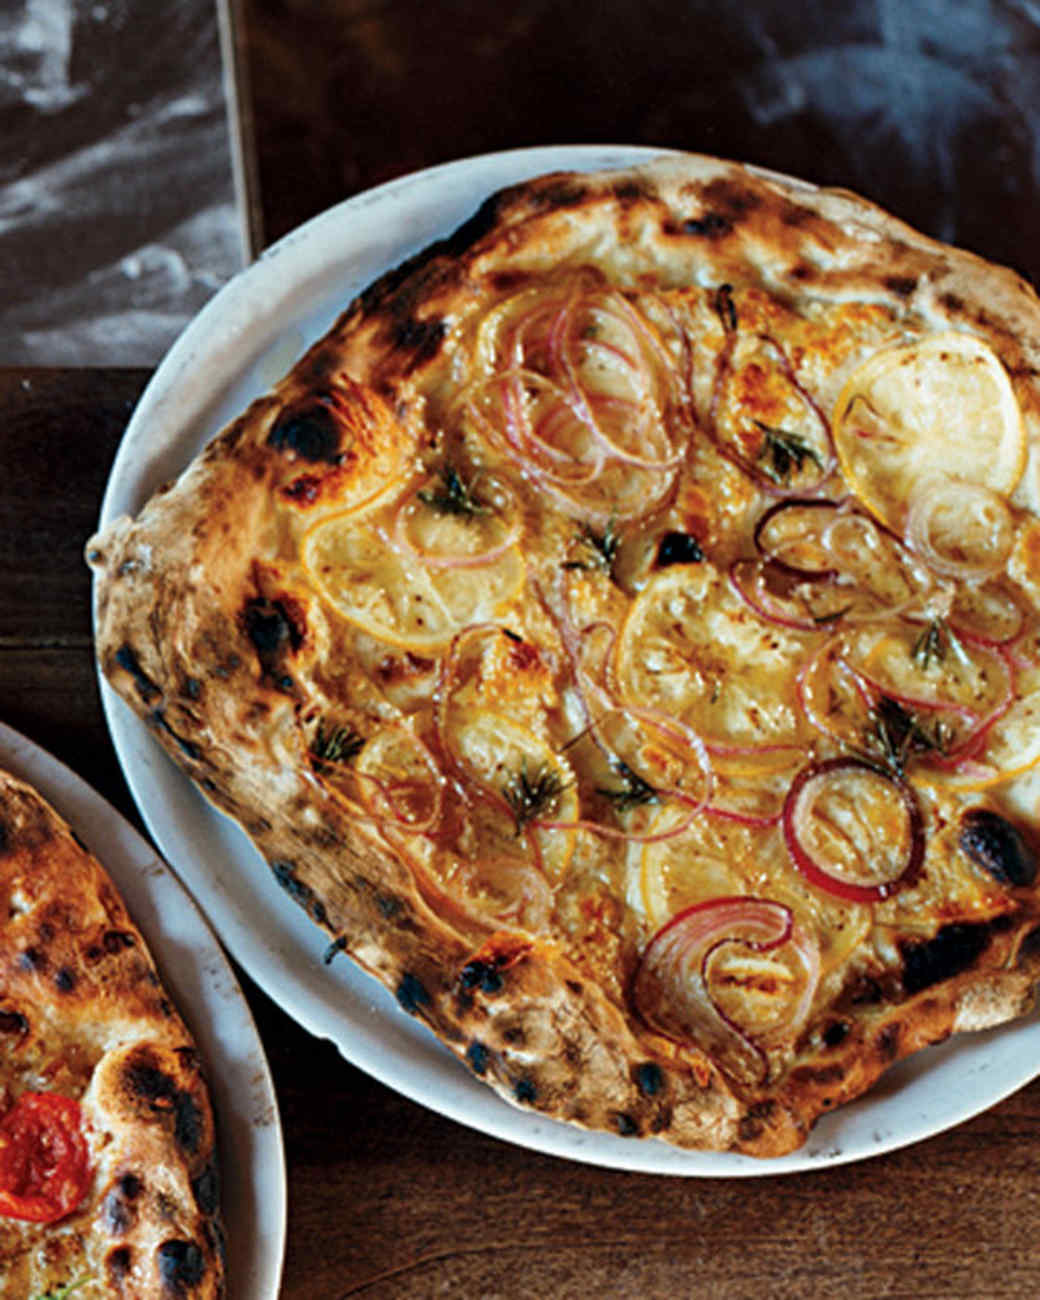 Lemon-and-Piave Pizza